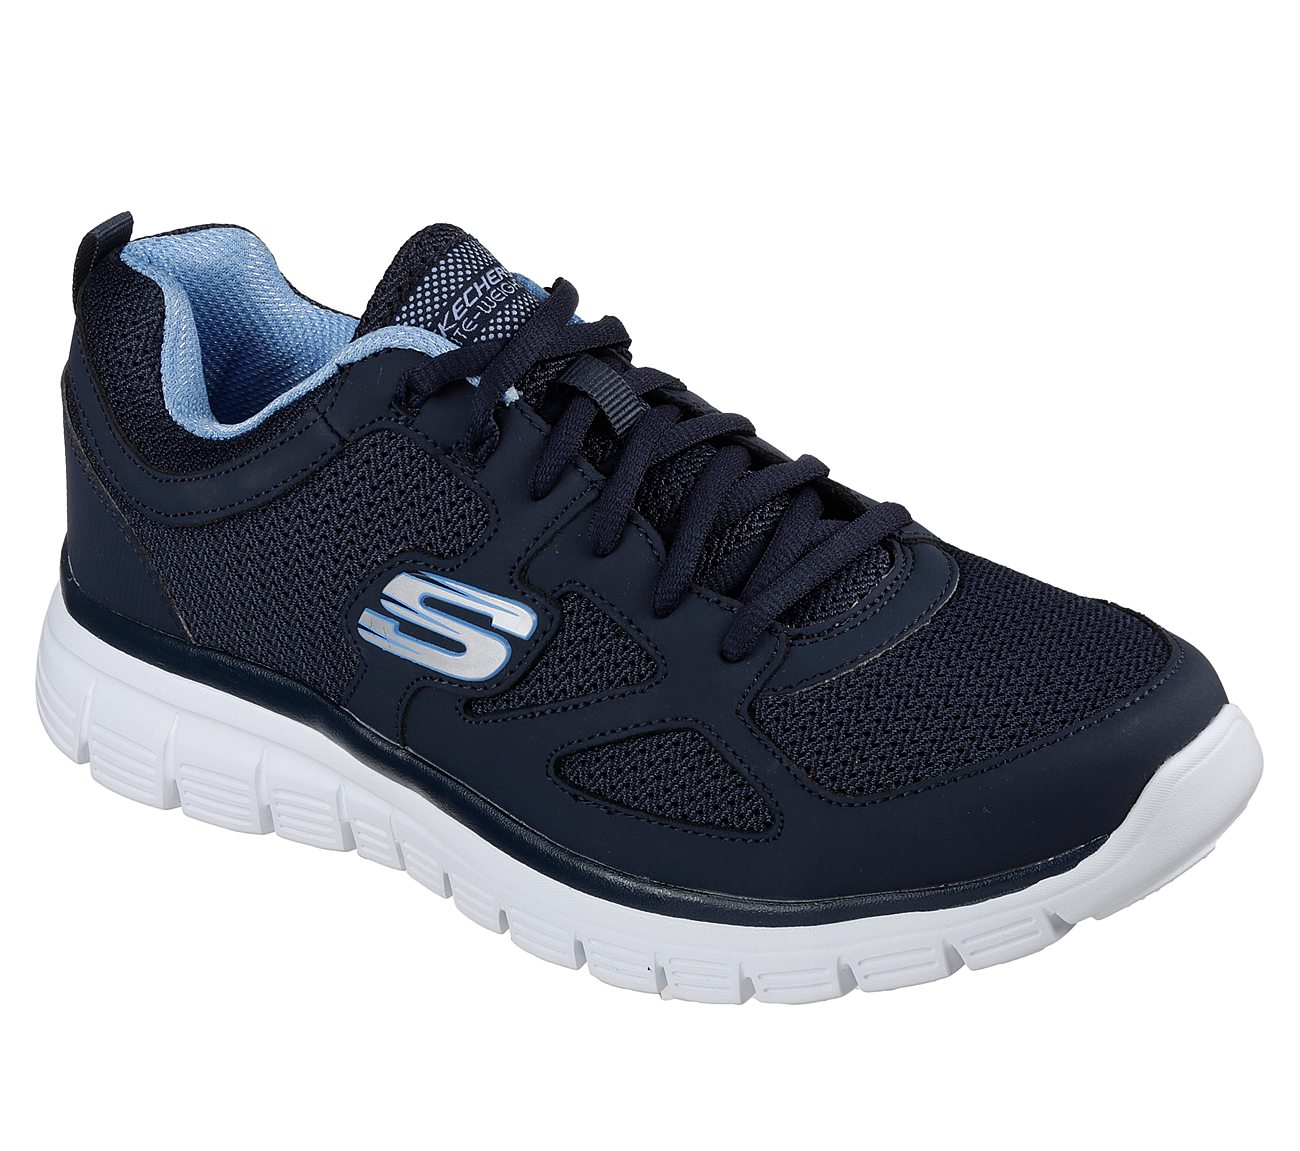 Mens Skechers Memory Foam Trainers Agoura 52635